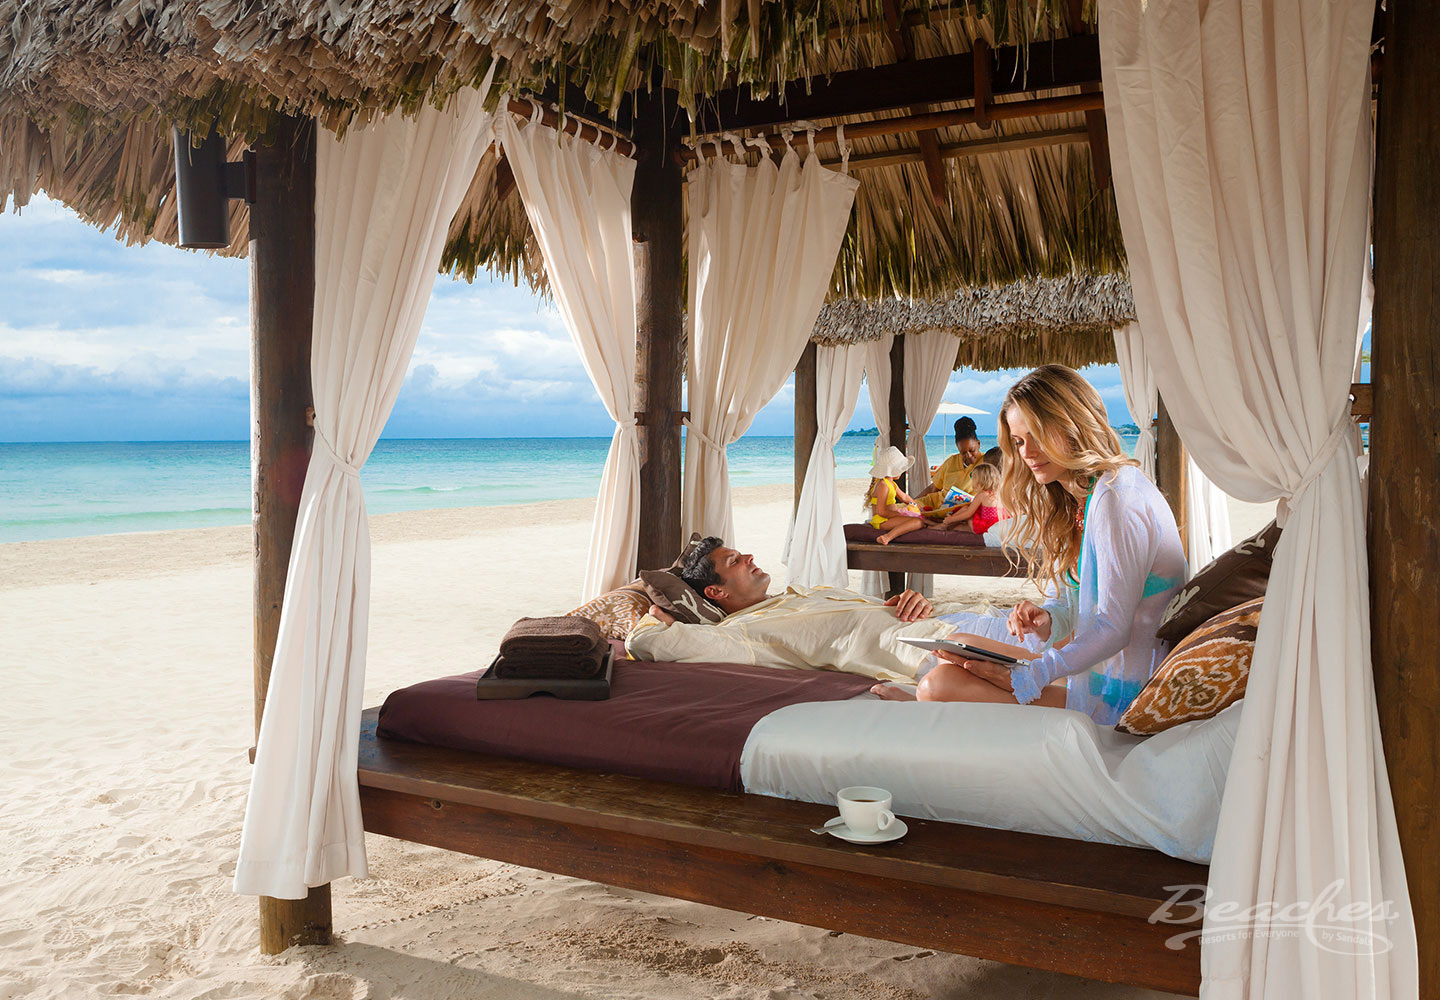 Travel Agency All-Inclusive Resort Beaches Negril 025